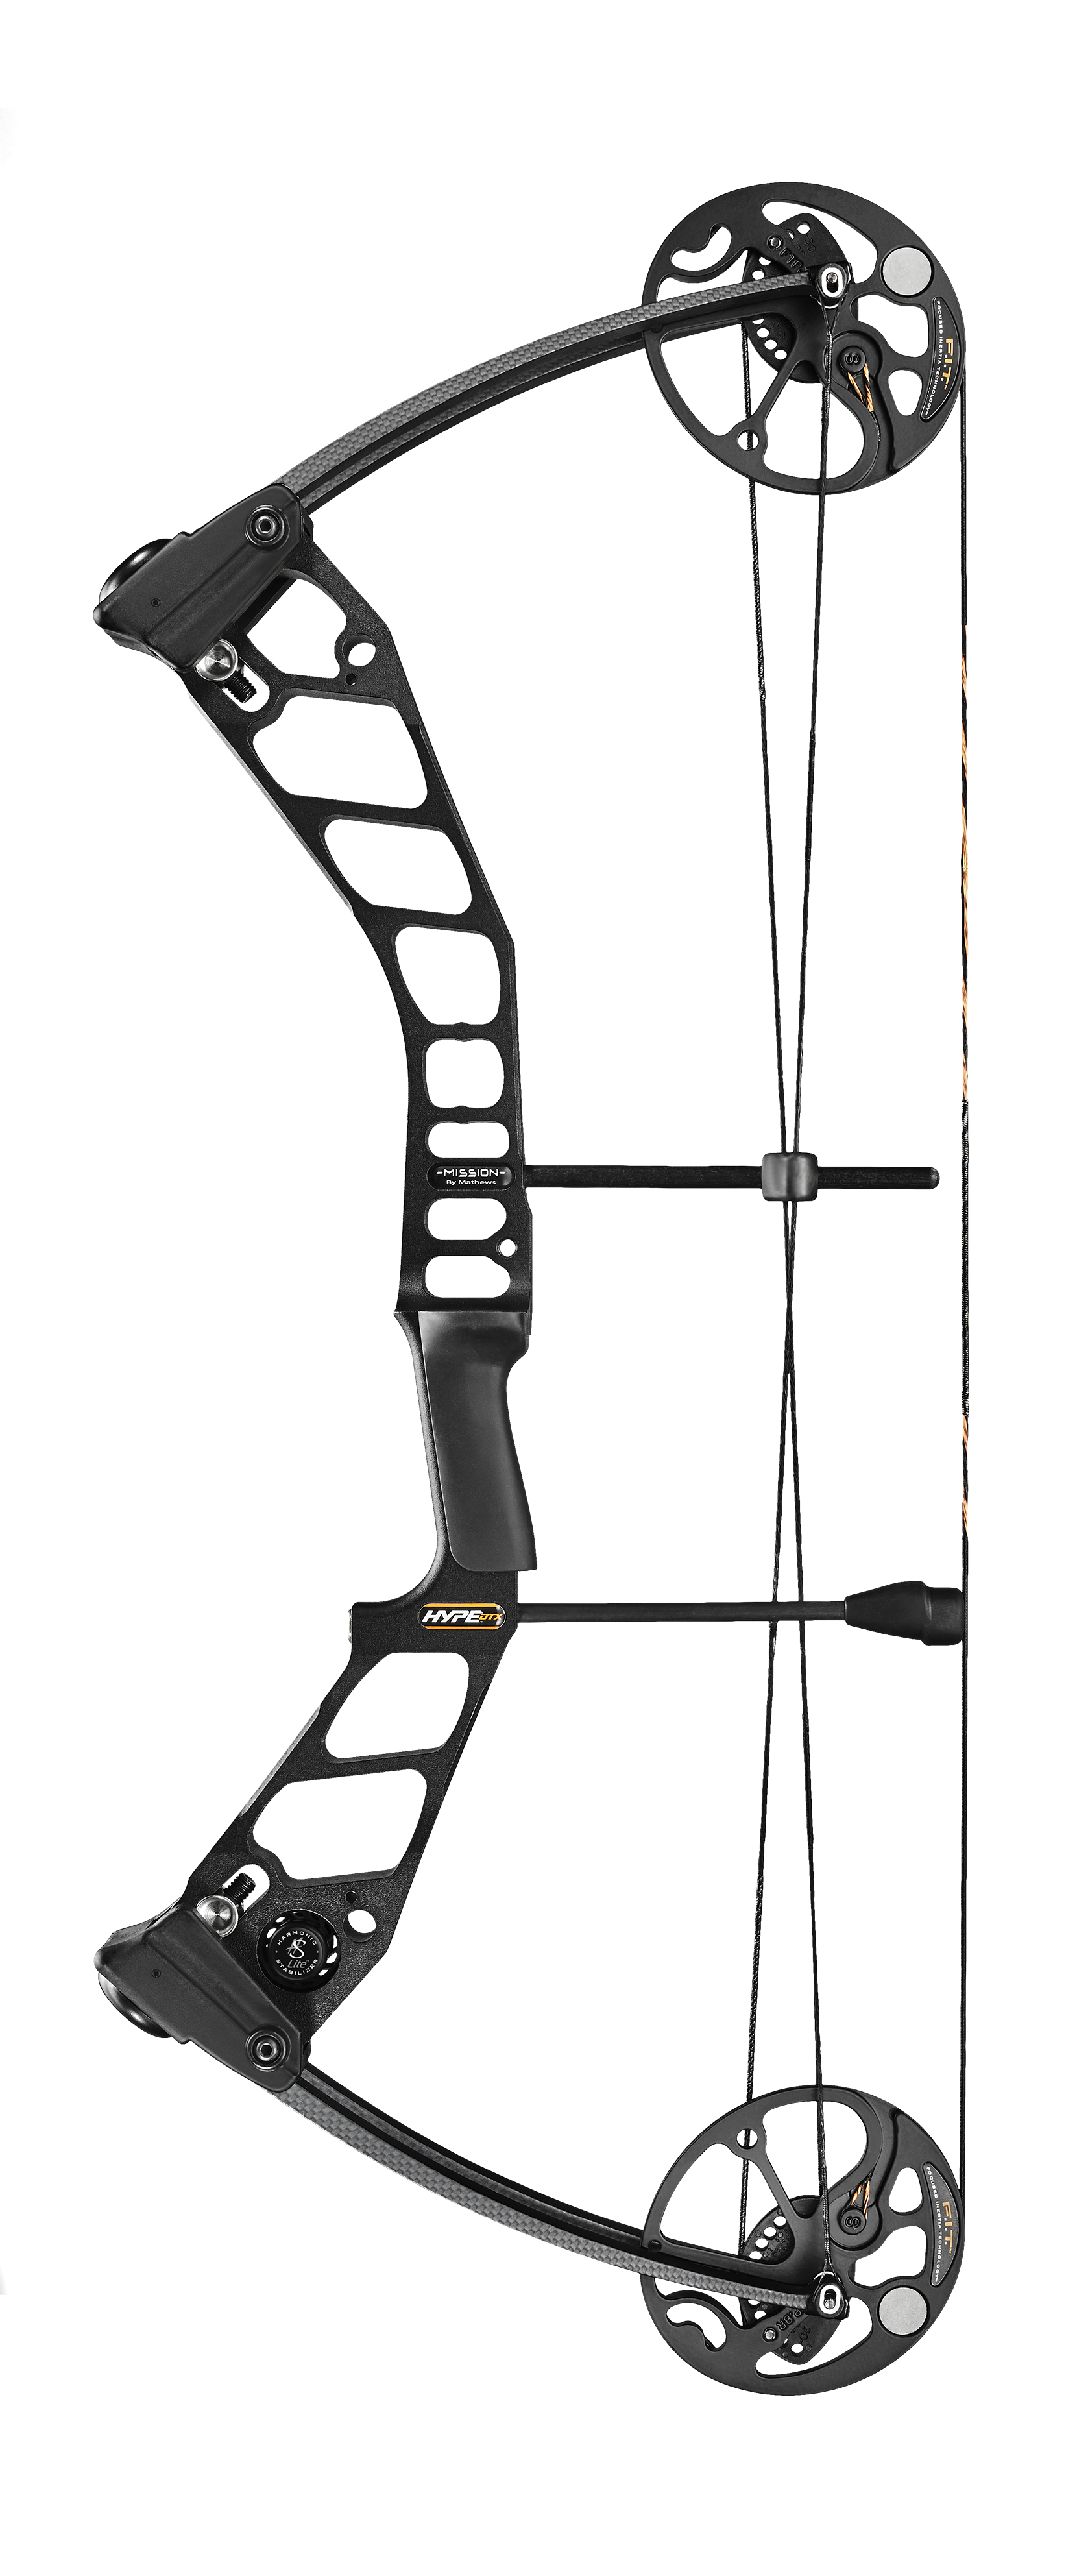 1660x3970 Mission Hype Dtx Compound Bow